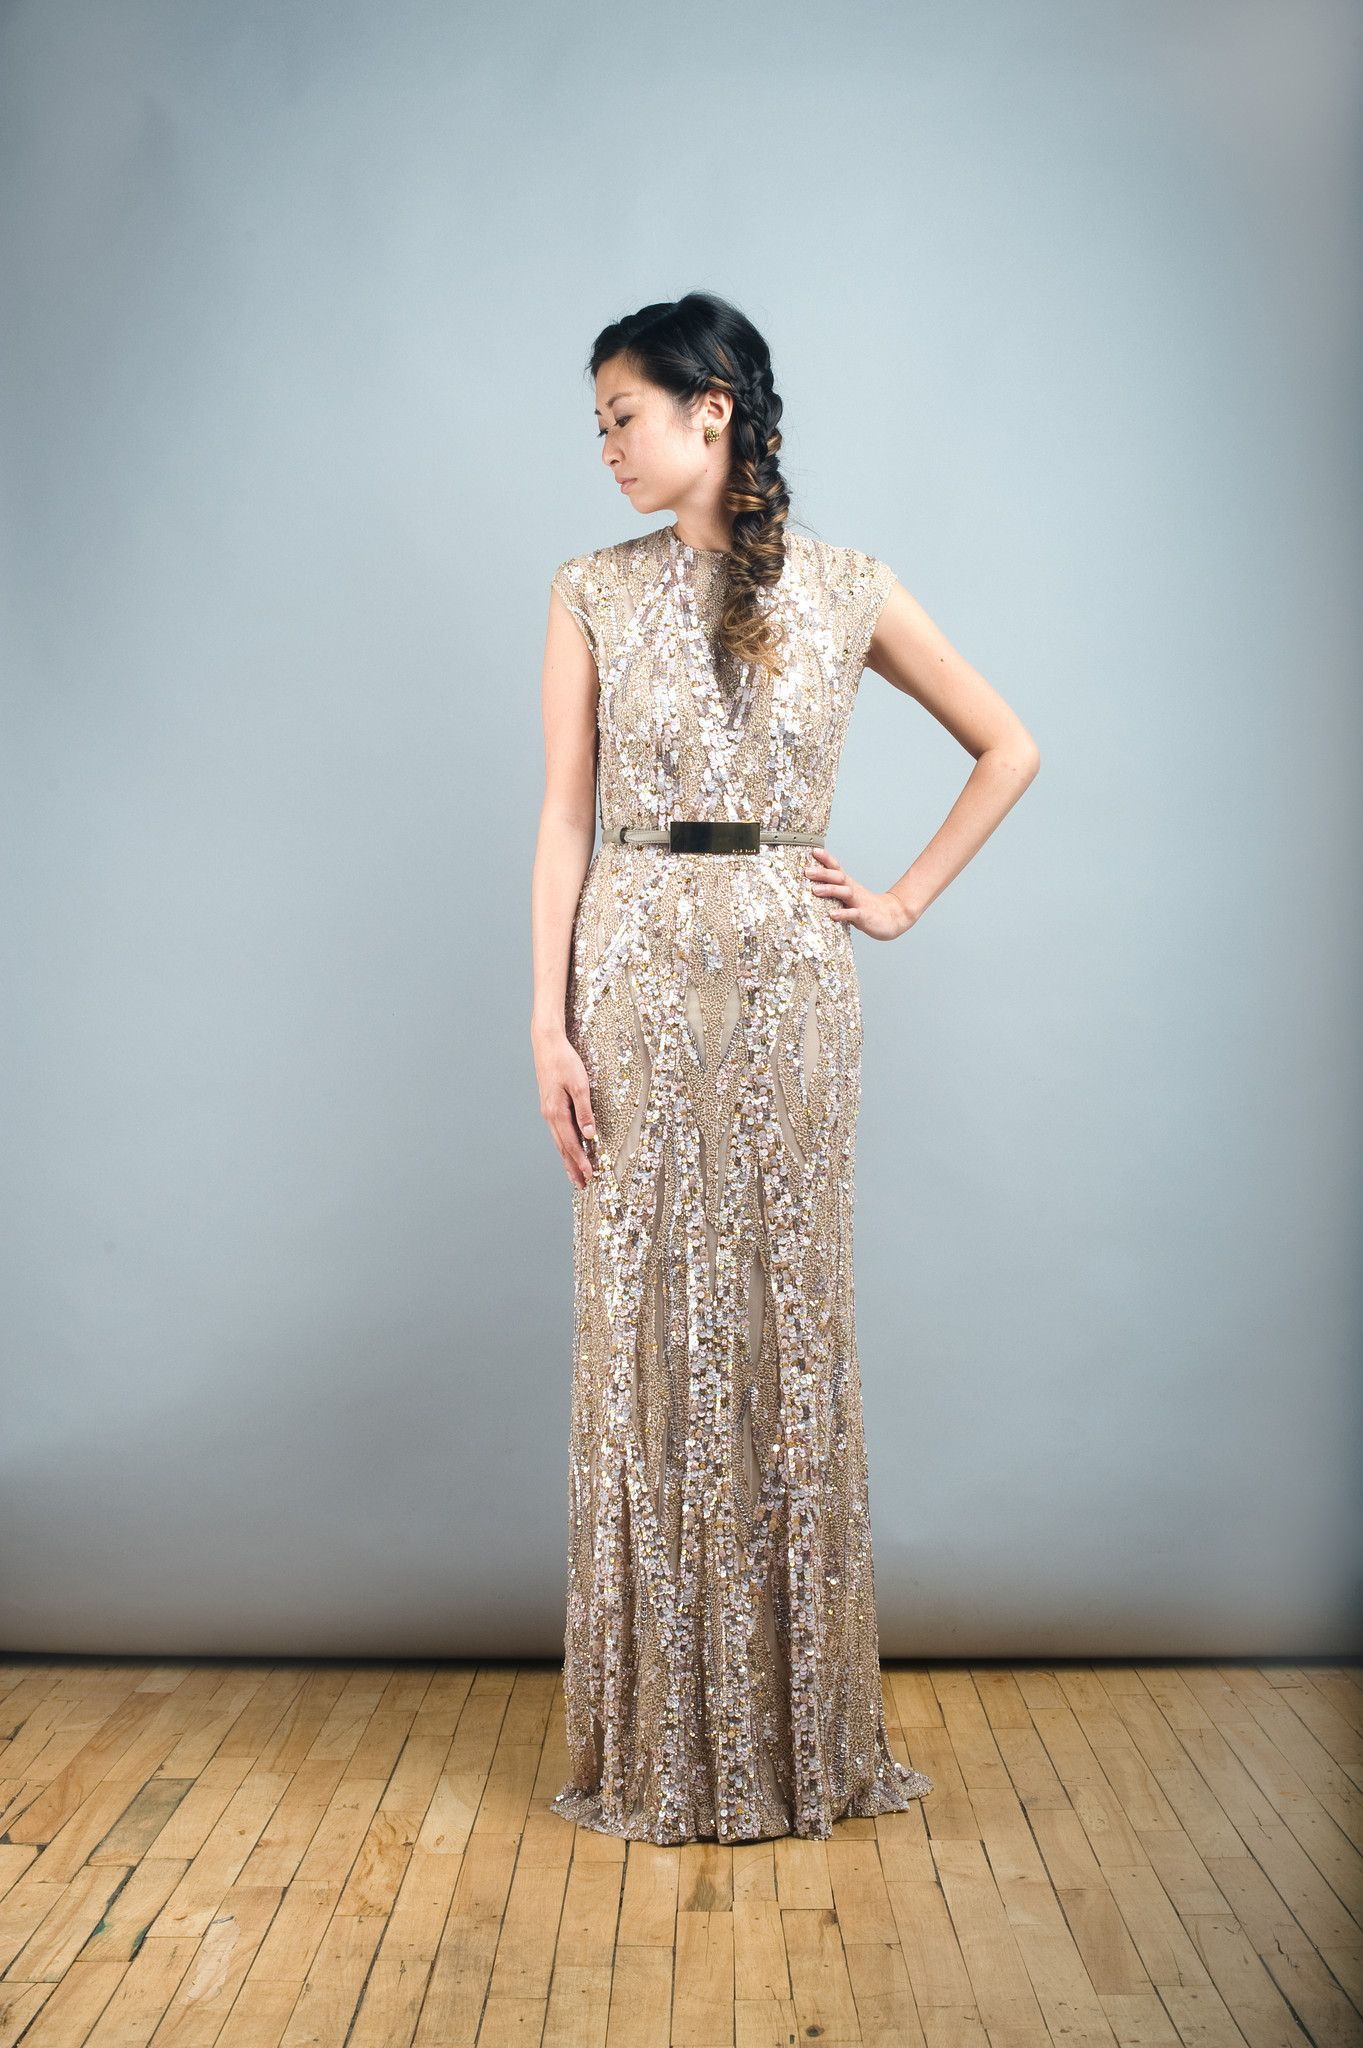 Sequined wedding dress   Reasons To Go For Gold When It Comes To Wedding Dresses  Wedding